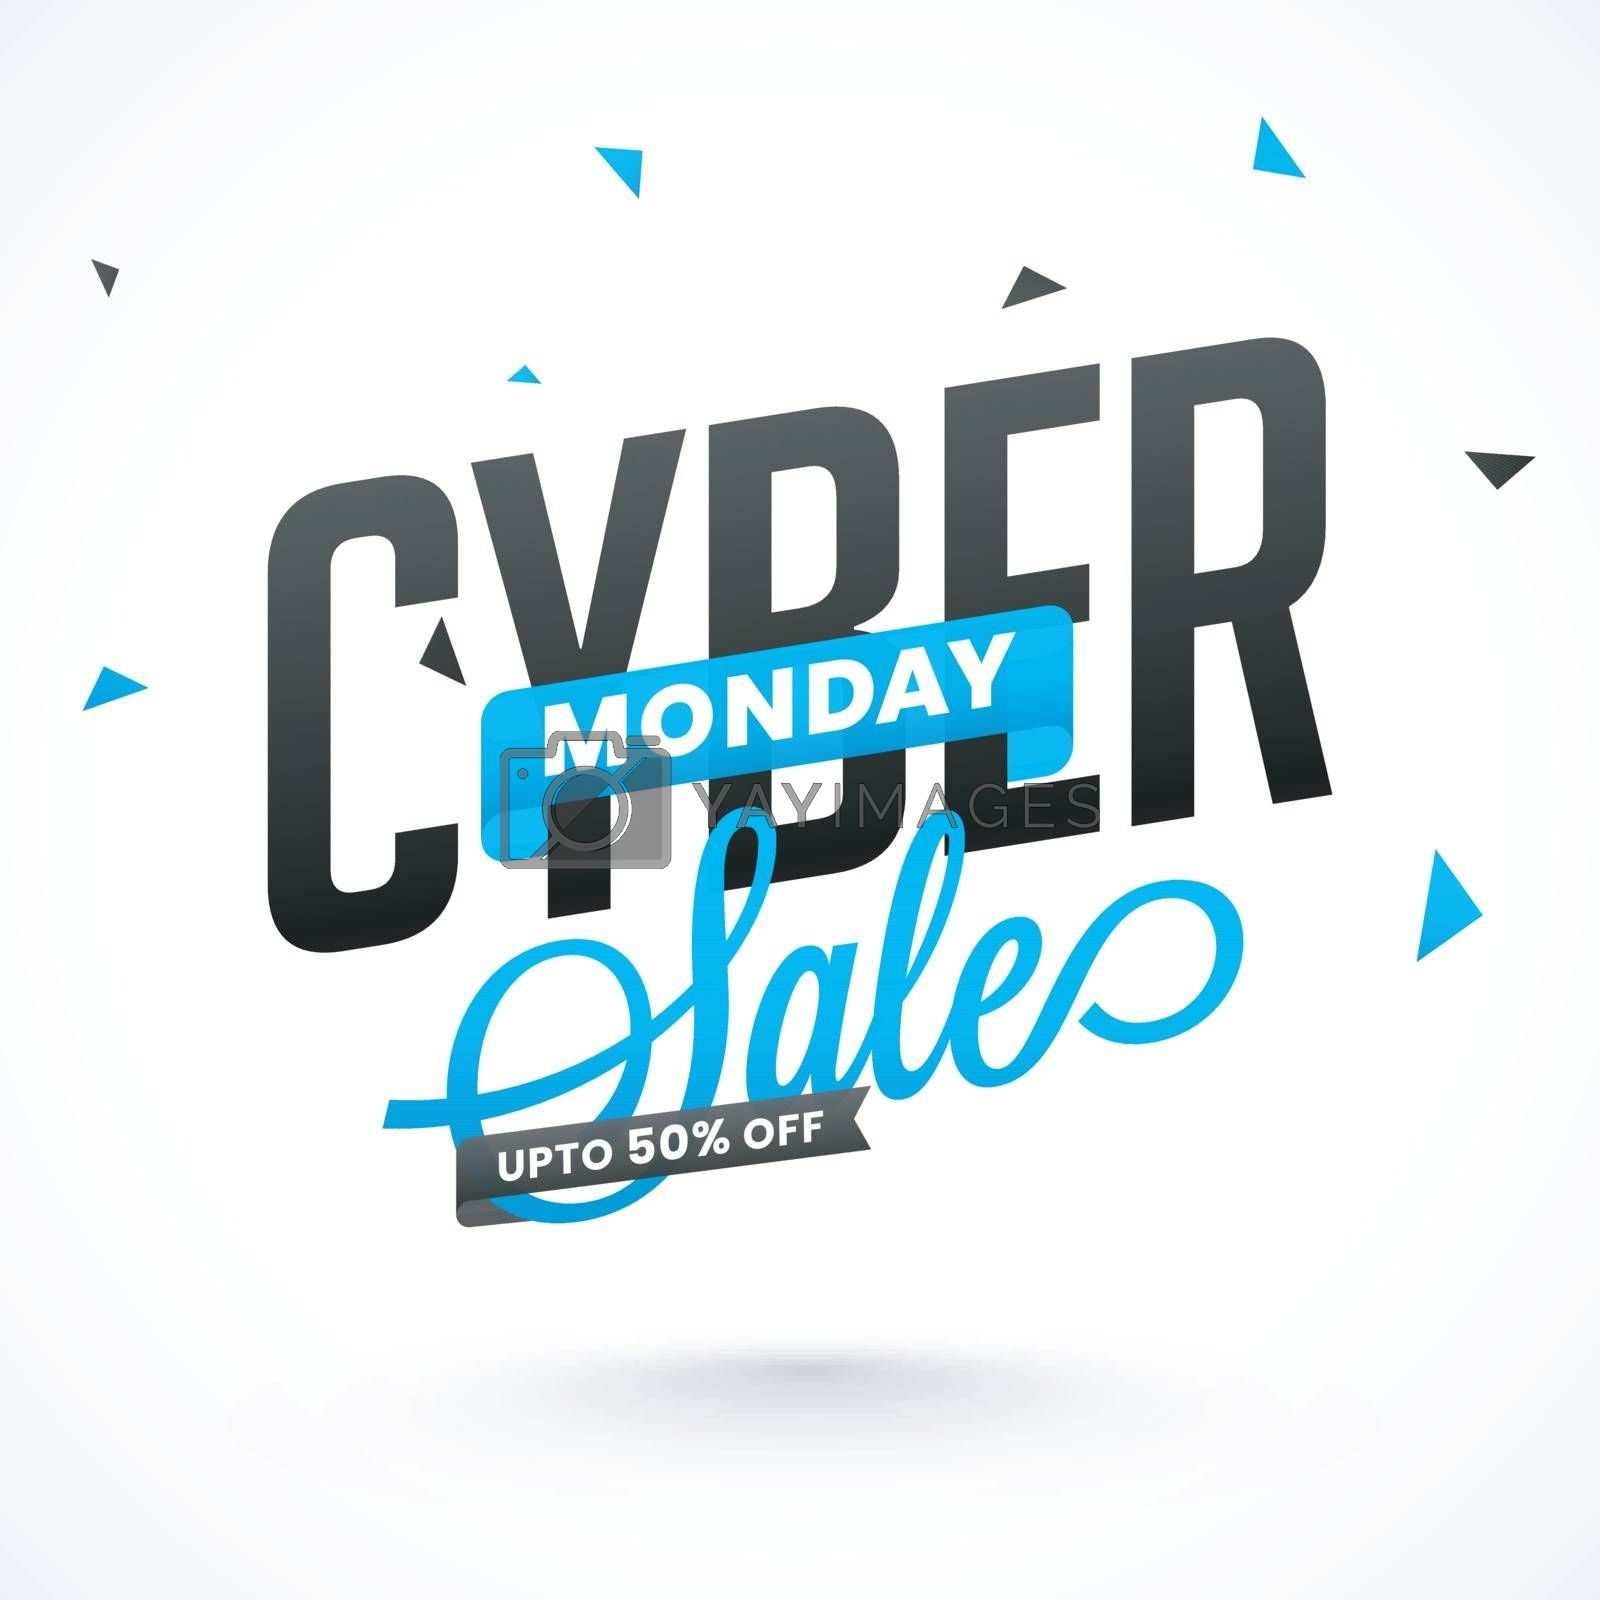 Stylish lettering of lettering Cyber Monday Sale with 50% discount offer on white background. Advertising template or flyer design.